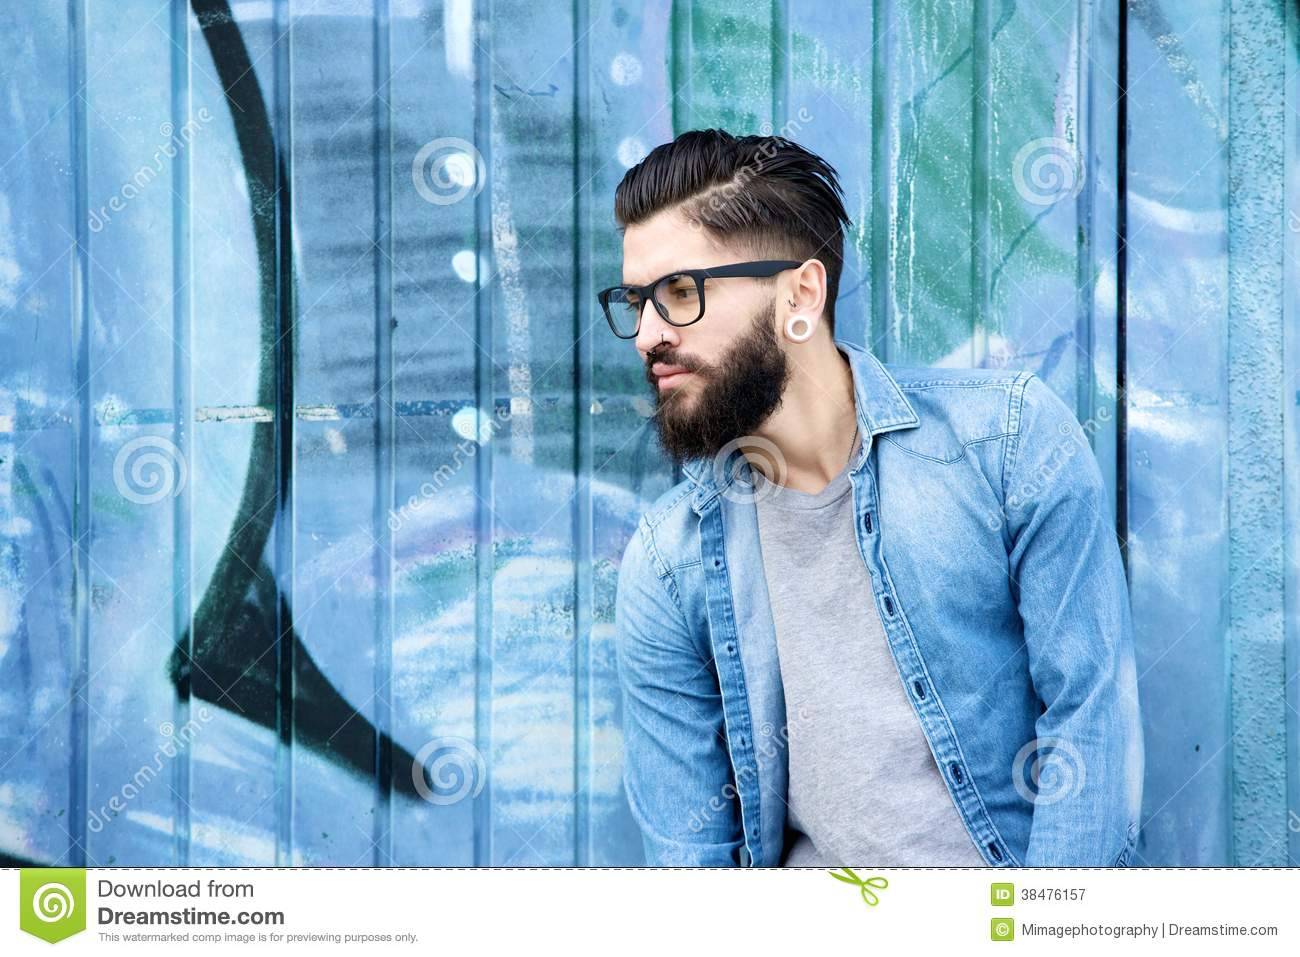 Mens fashion background images